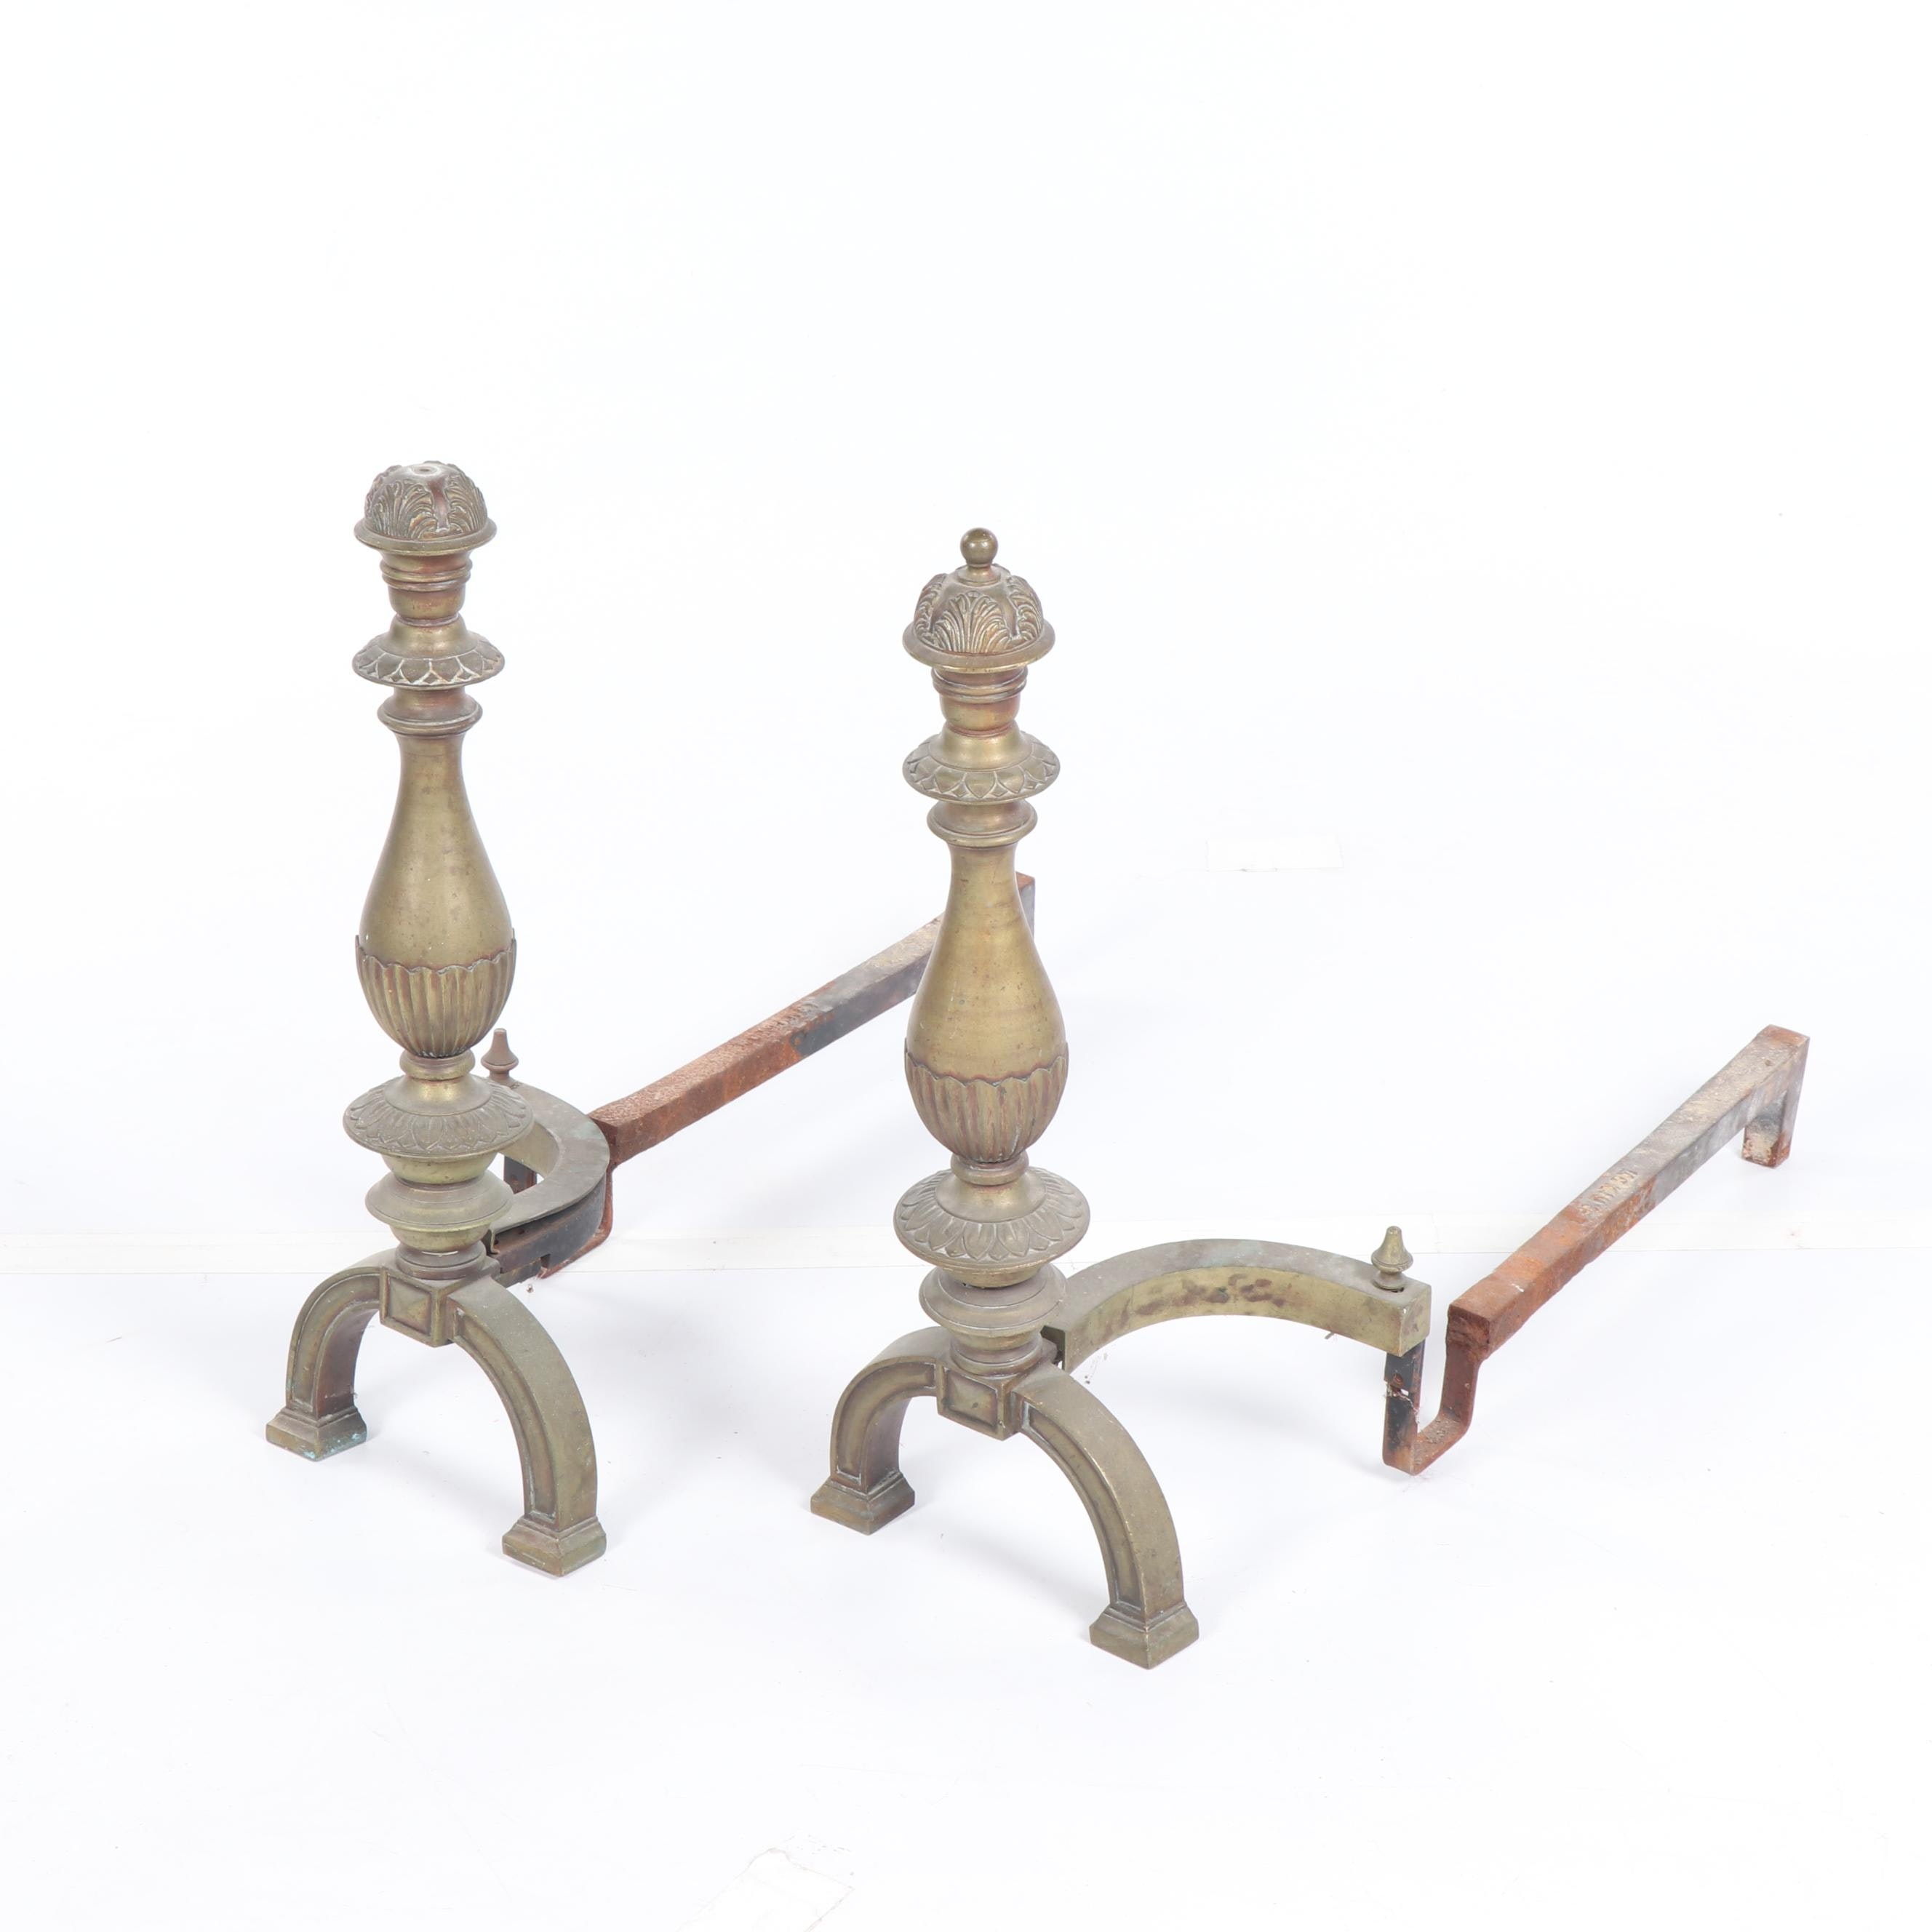 Early to Mid 20th Century McKinney Brass Andirons